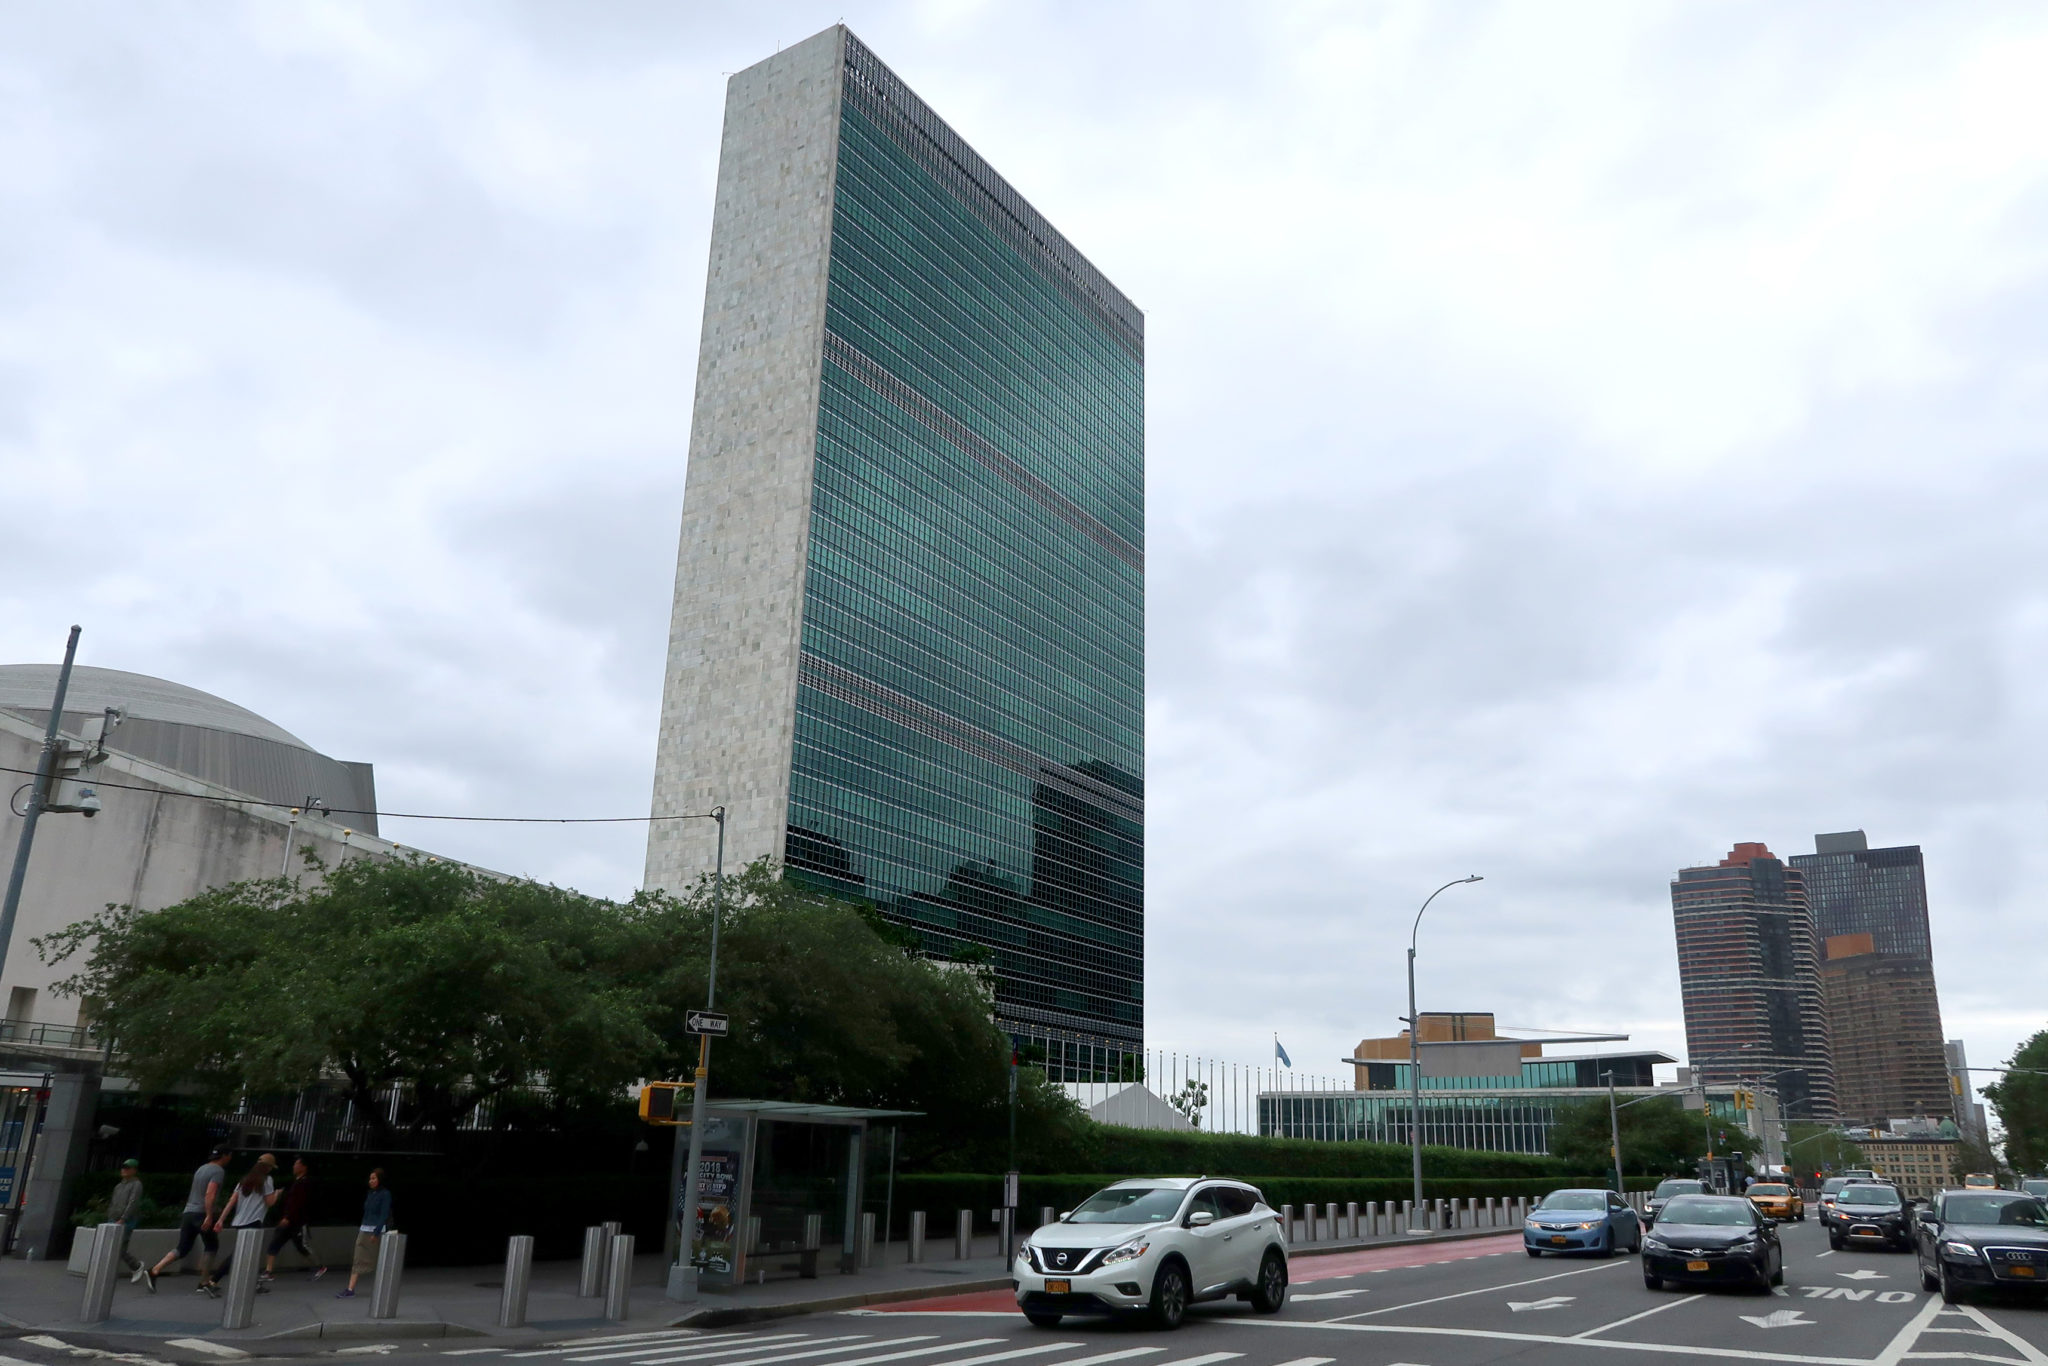 Siège de l'Organisation des Nations Unies (ONU), New York.